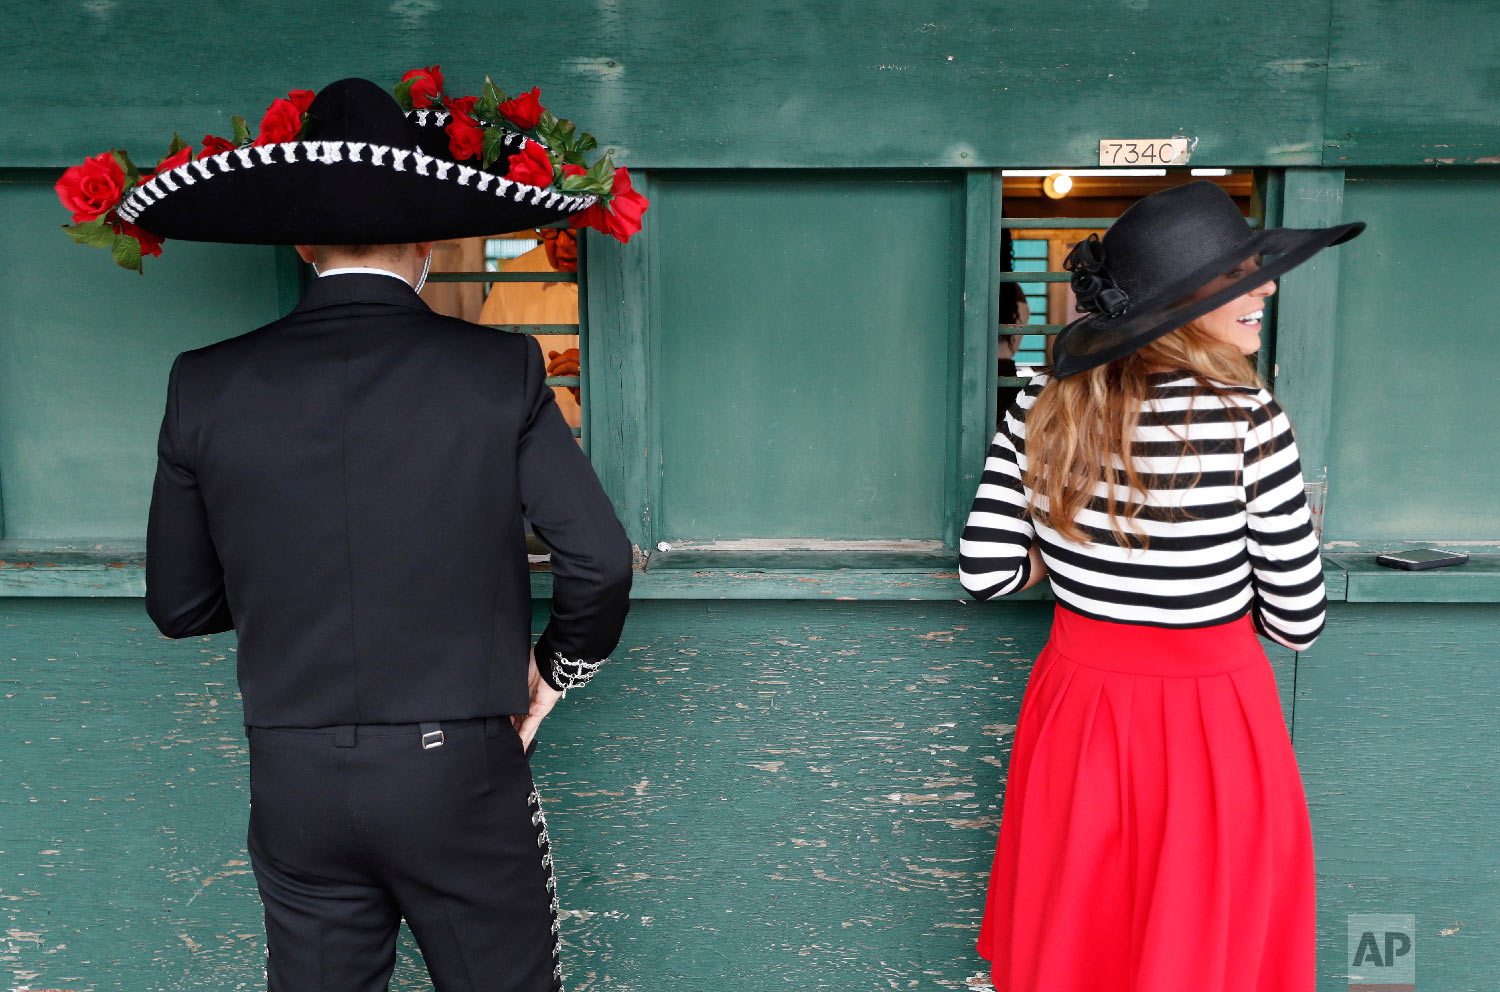 Fans place bets before the 144th running of the Kentucky Derby horse race at Churchill Downs Saturday, May 5, 2018, in Louisville, Ky. (AP Photo/John Minchillo)